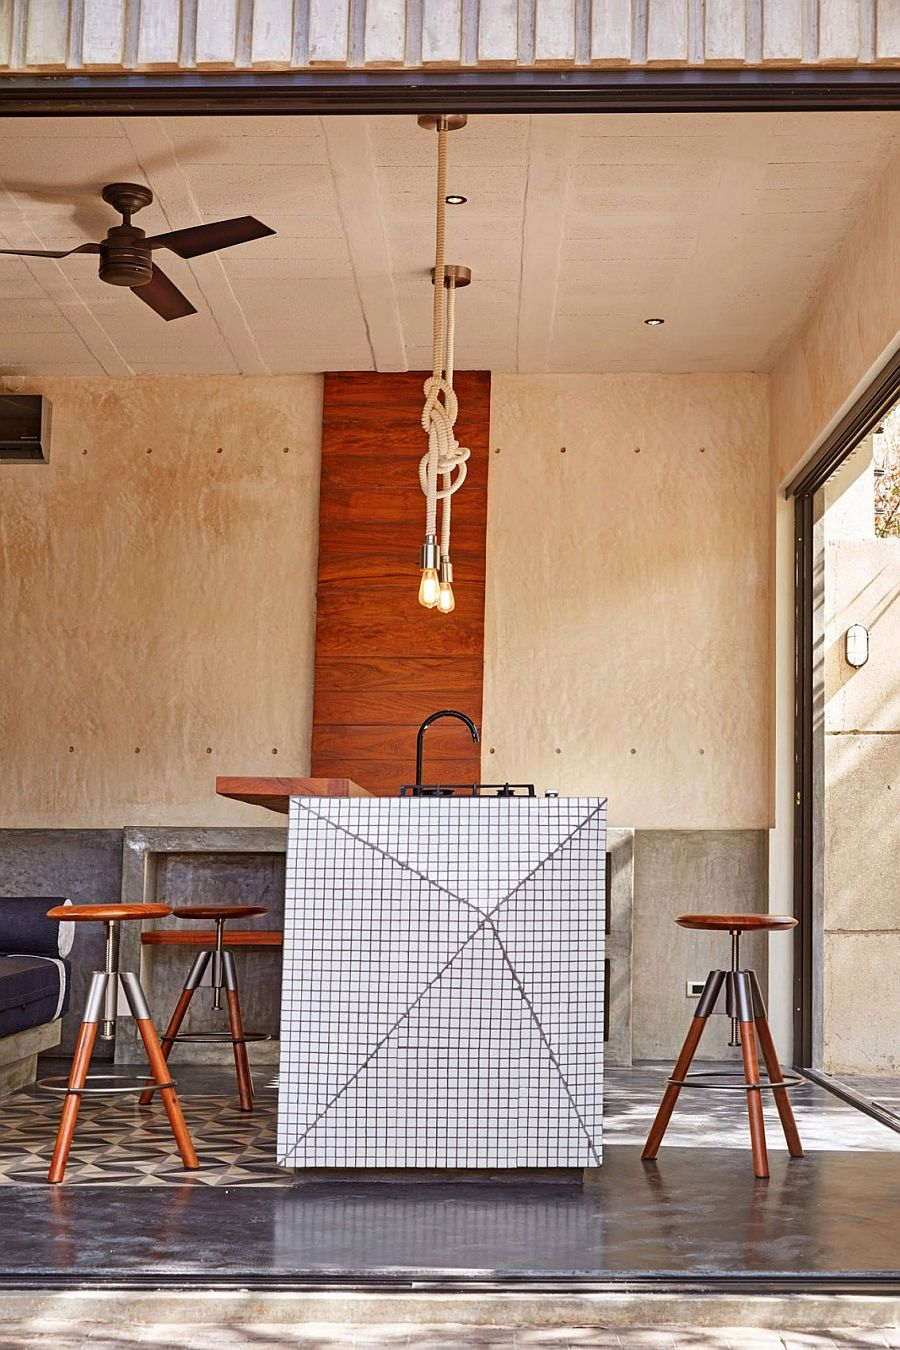 Rope pendants and fun stools give the kitchen a quirky look